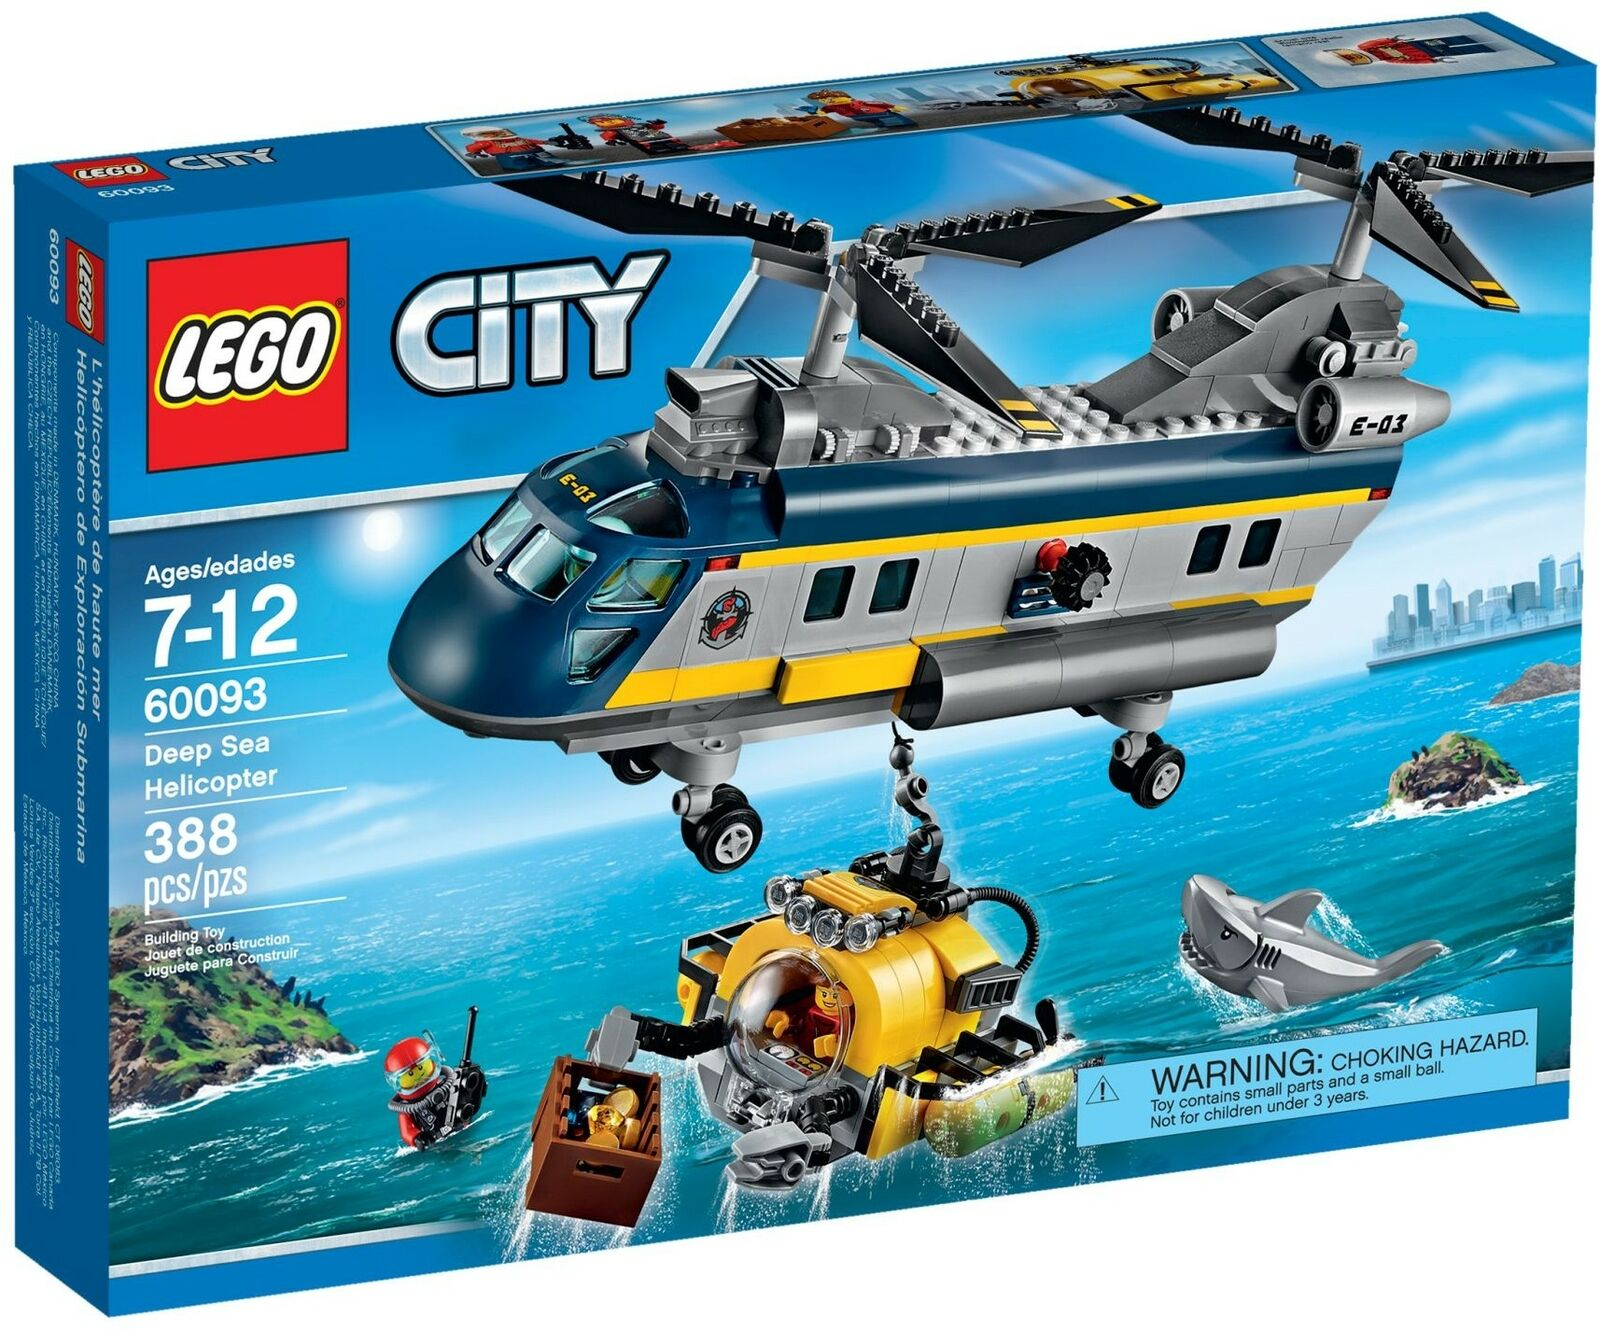 NEW Lego City Deep Sea Explorers Helicopter 60093 Set Brand New Building Kit